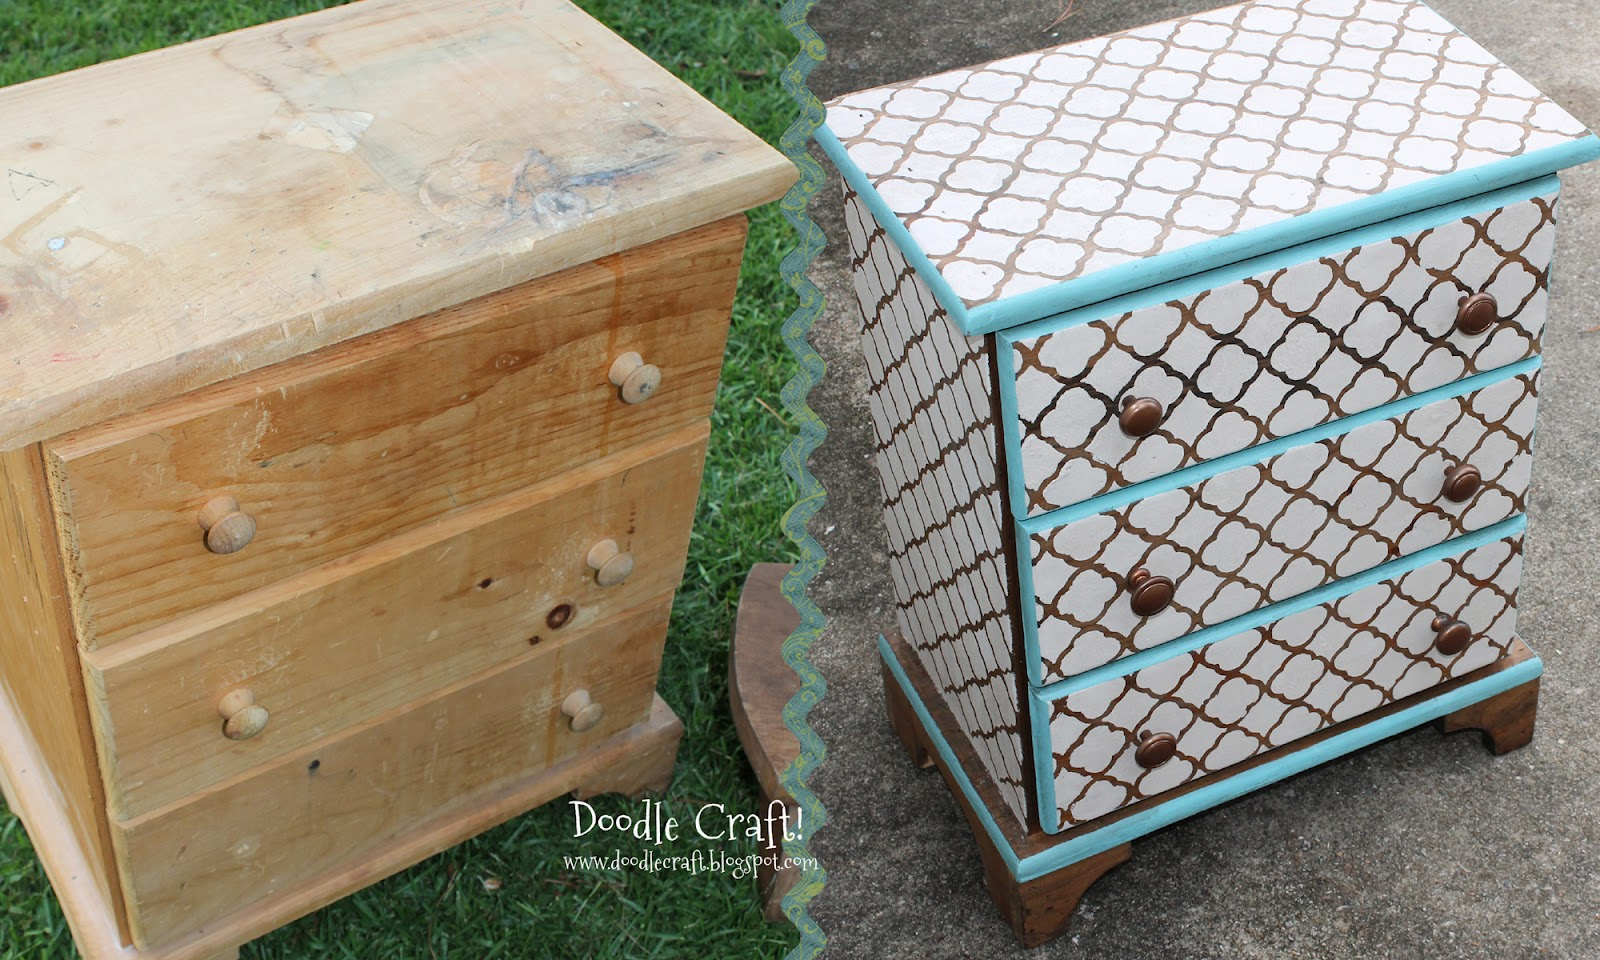 Custom DIY Stenciling & Staining furniture!